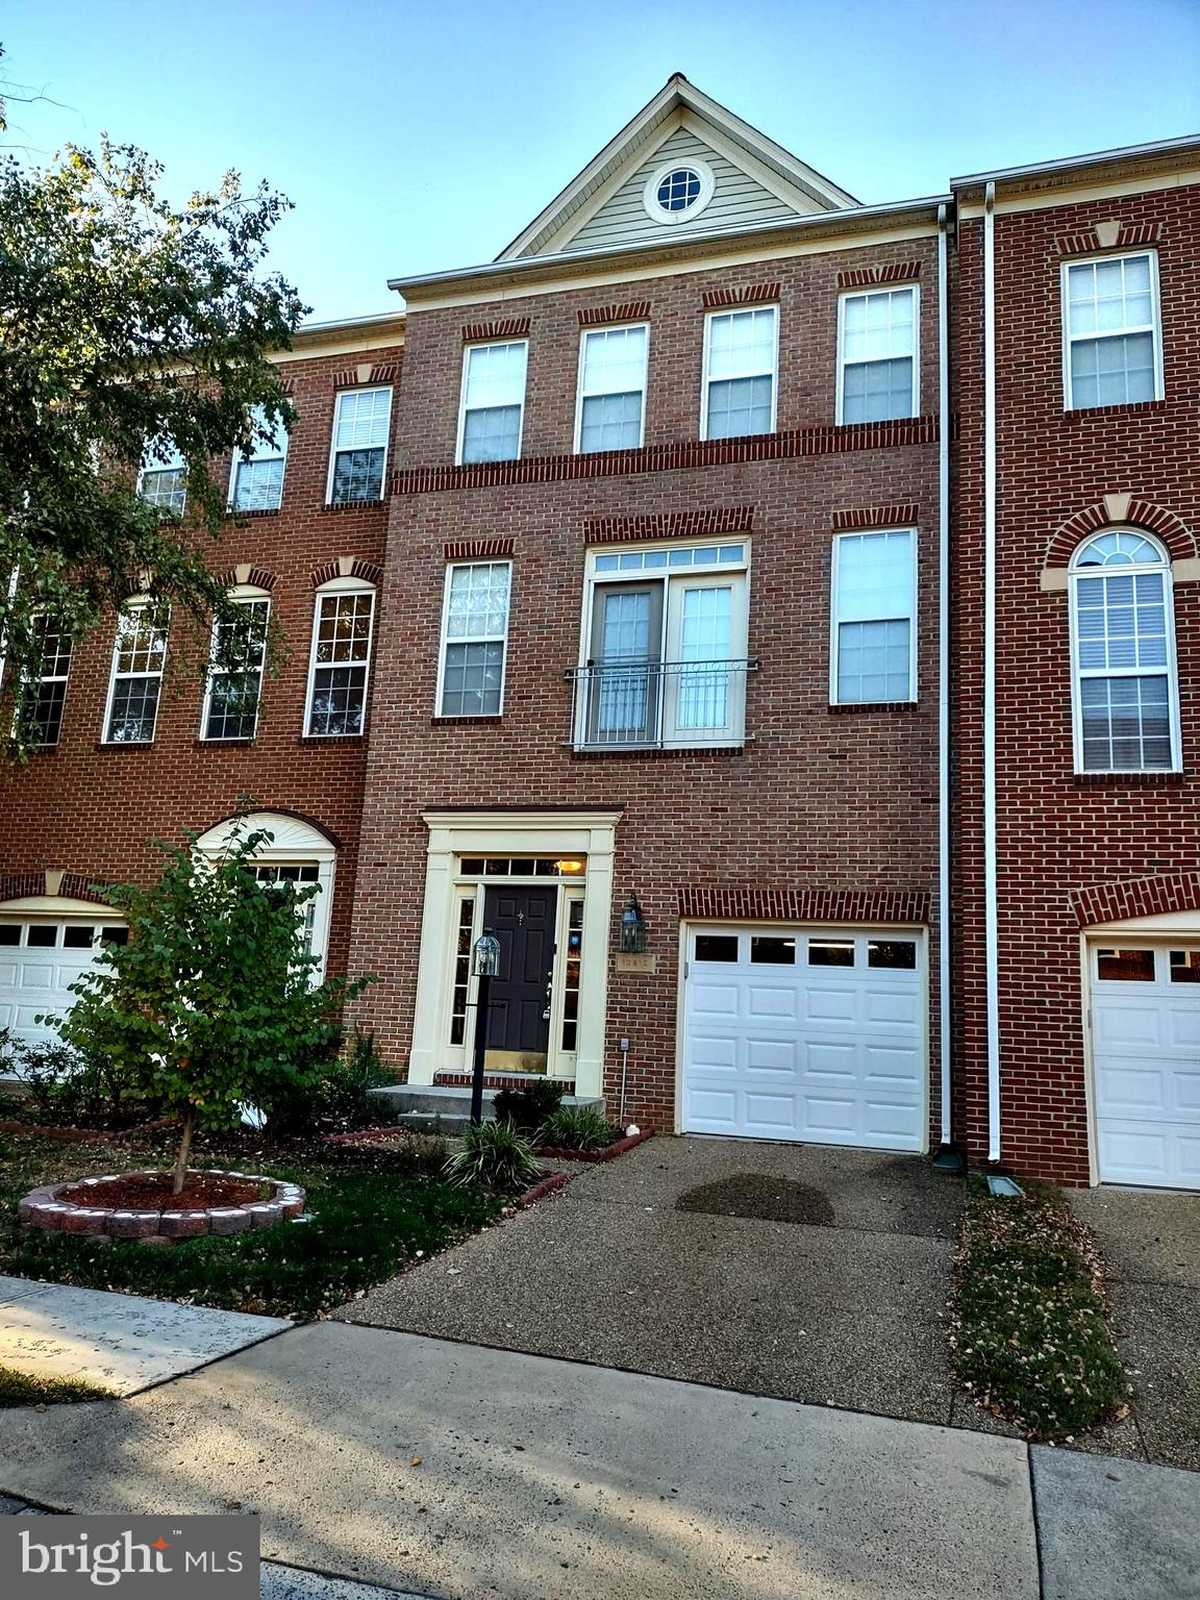 $2,650 - 3Br/4Ba -  for Sale in Squirrel Hill, Herndon